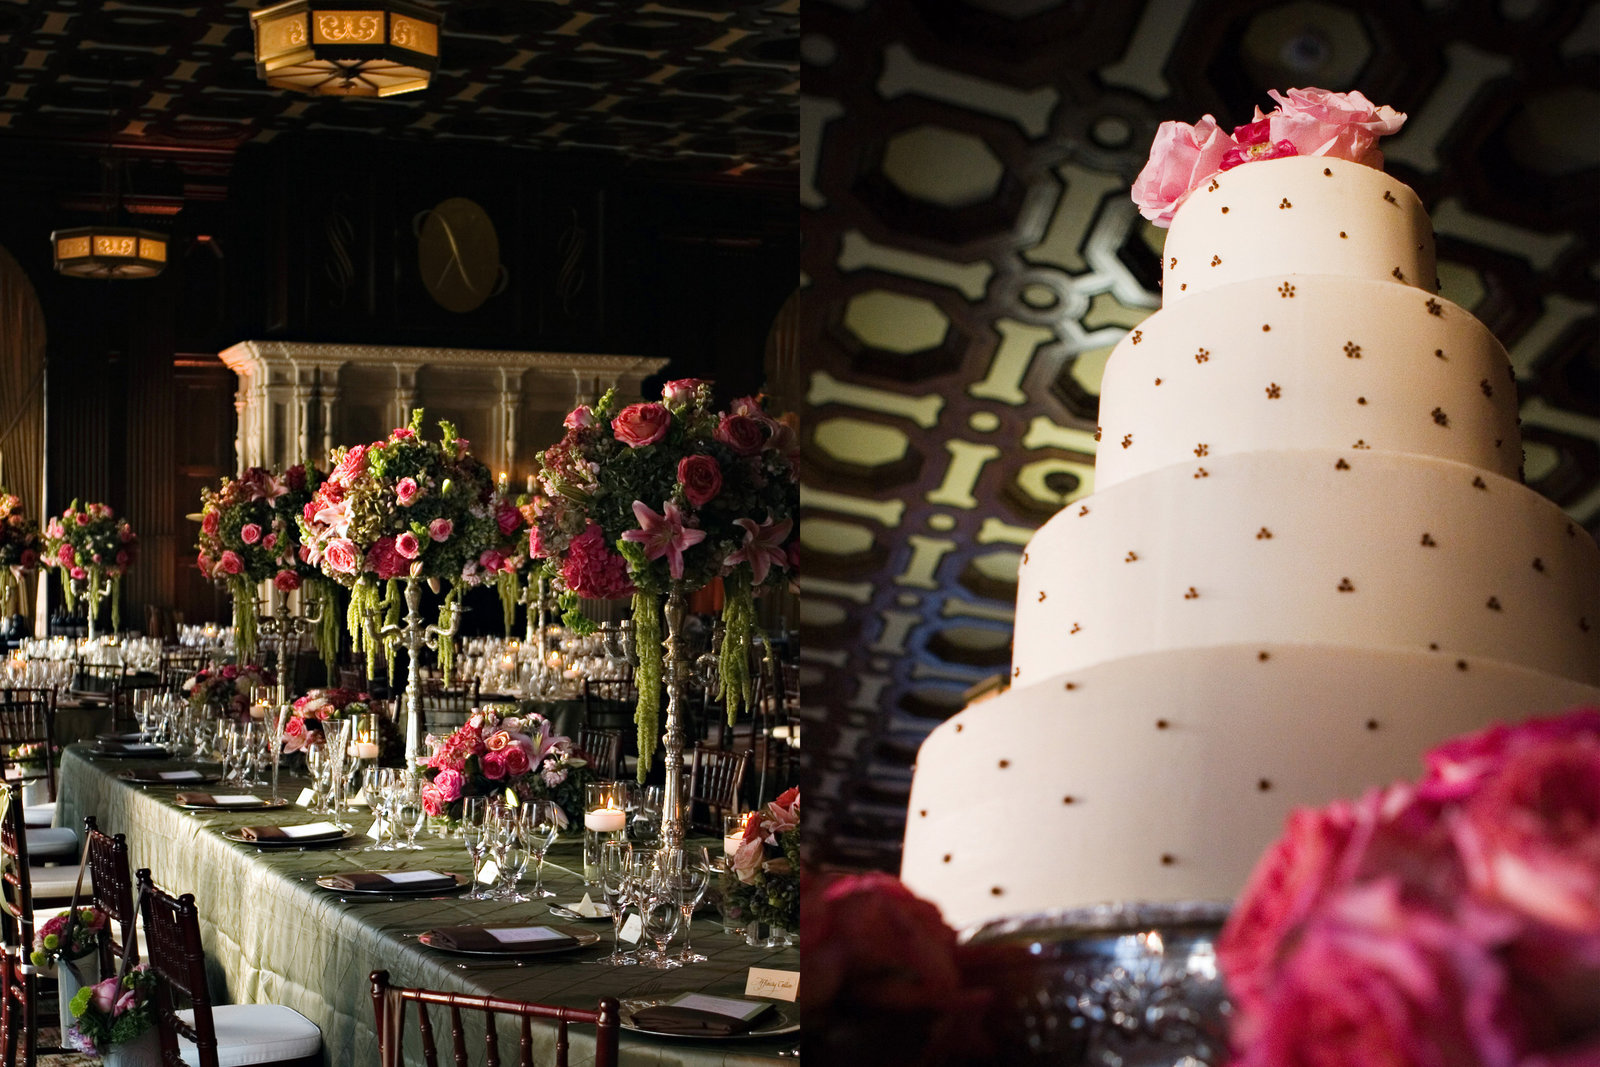 Julia Morgan Ballroom, Julia Morgan Ballroom Wedding, wedding cake, Jennifer Baciocco Photography